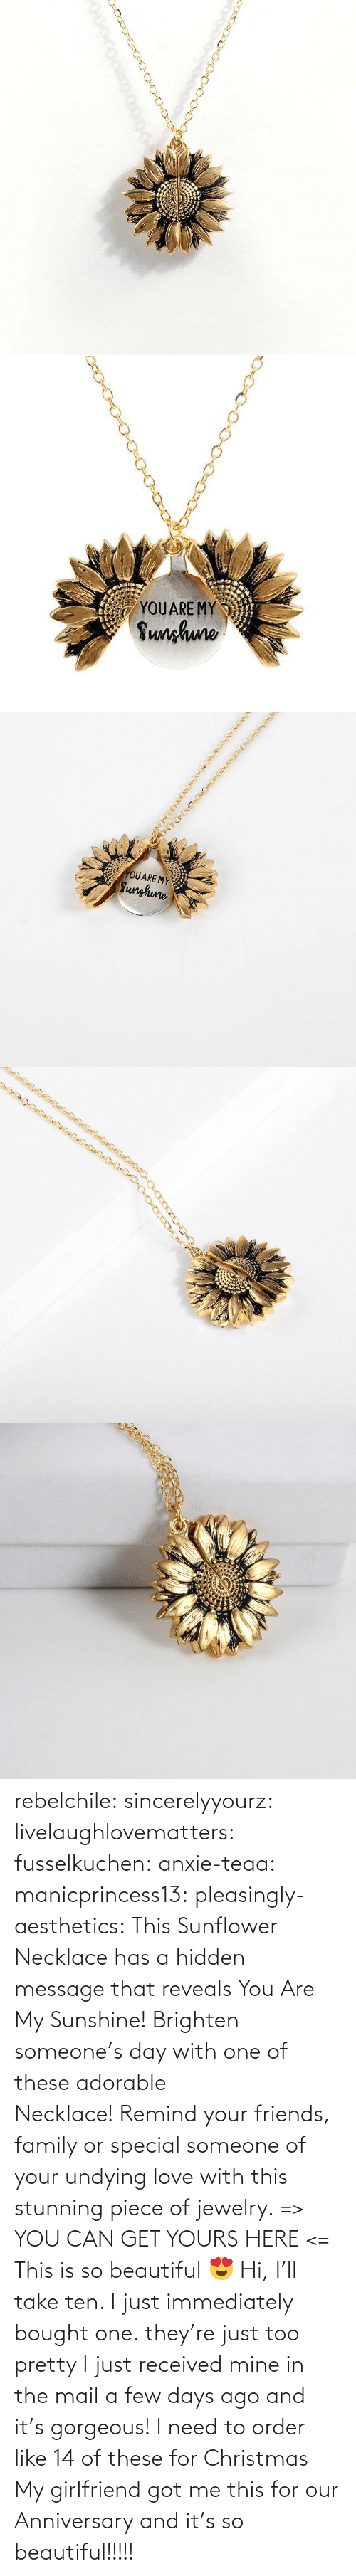 Necklace: rebelchile:  sincerelyyourz:  livelaughlovematters:  fusselkuchen:  anxie-teaa:   manicprincess13:   pleasingly-aesthetics:  This Sunflower Necklace has a hidden message that reveals You Are My Sunshine! Brighten someone's day with one of these adorable Necklace! Remind your friends, family or special someone of your undying love with this stunning piece of jewelry. => YOU CAN GET YOURS HERE <=   This is so beautiful 😍    Hi, I'll take ten.    I just immediately bought one. they're just too pretty   I just received mine in the mail a few days ago and it's gorgeous!   I need to order like 14 of these for Christmas    My girlfriend got me this for our Anniversary and it's so beautiful!!!!!